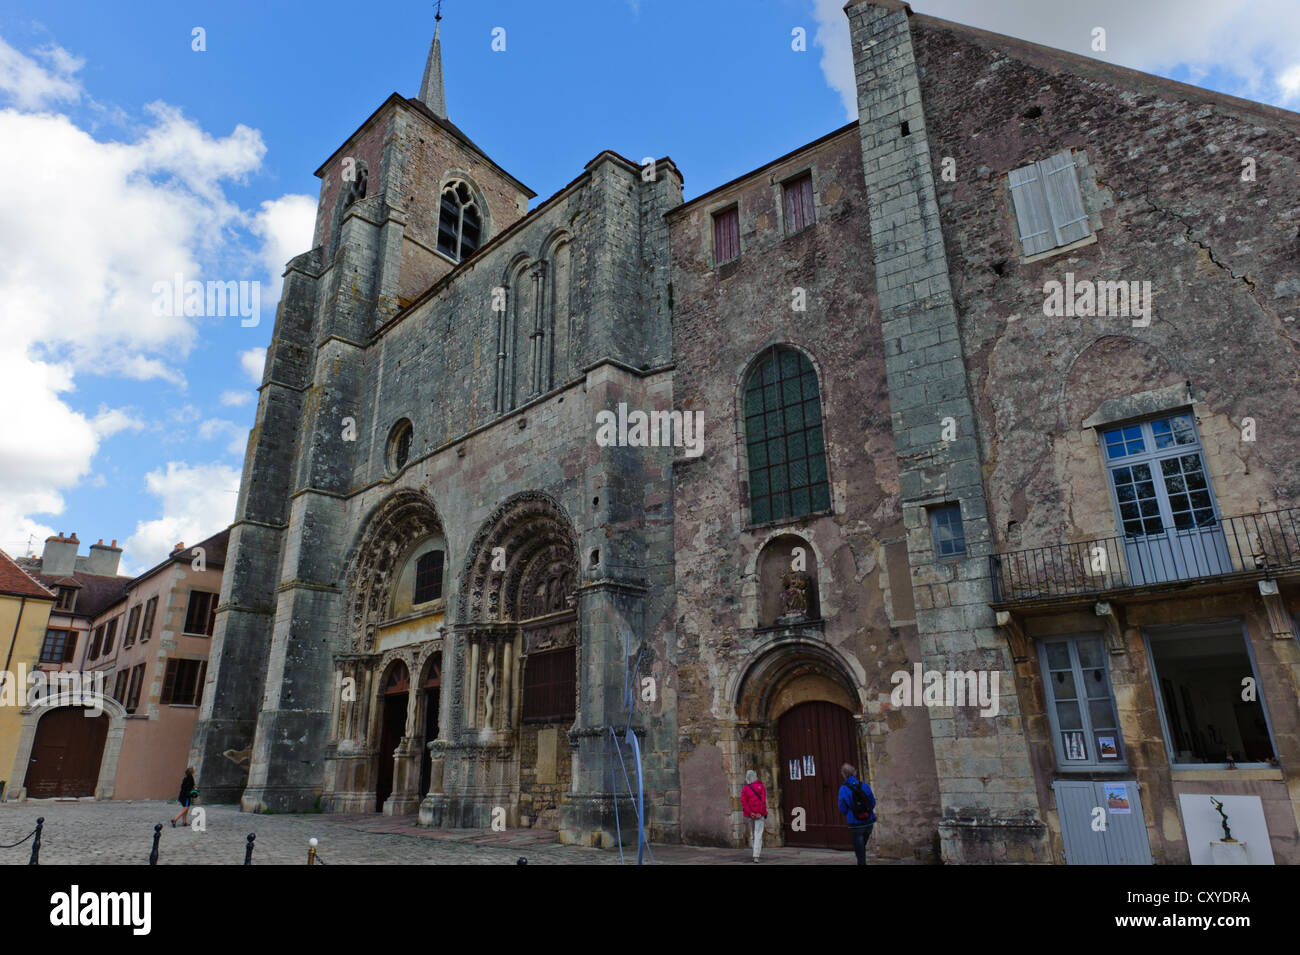 Church of St Lazare, Avallon - Stock Image